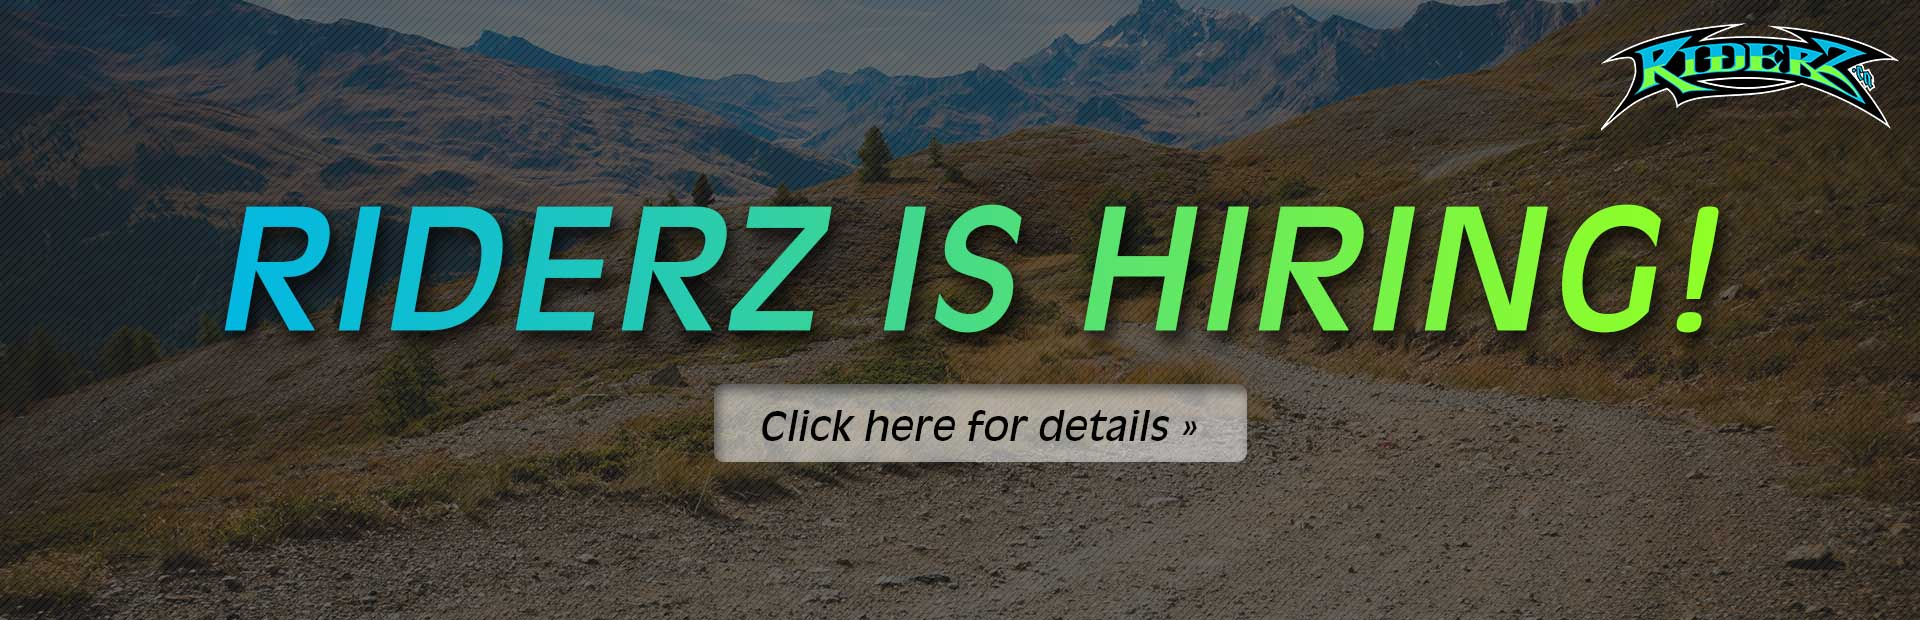 Riderz is hiring! Click here for details.